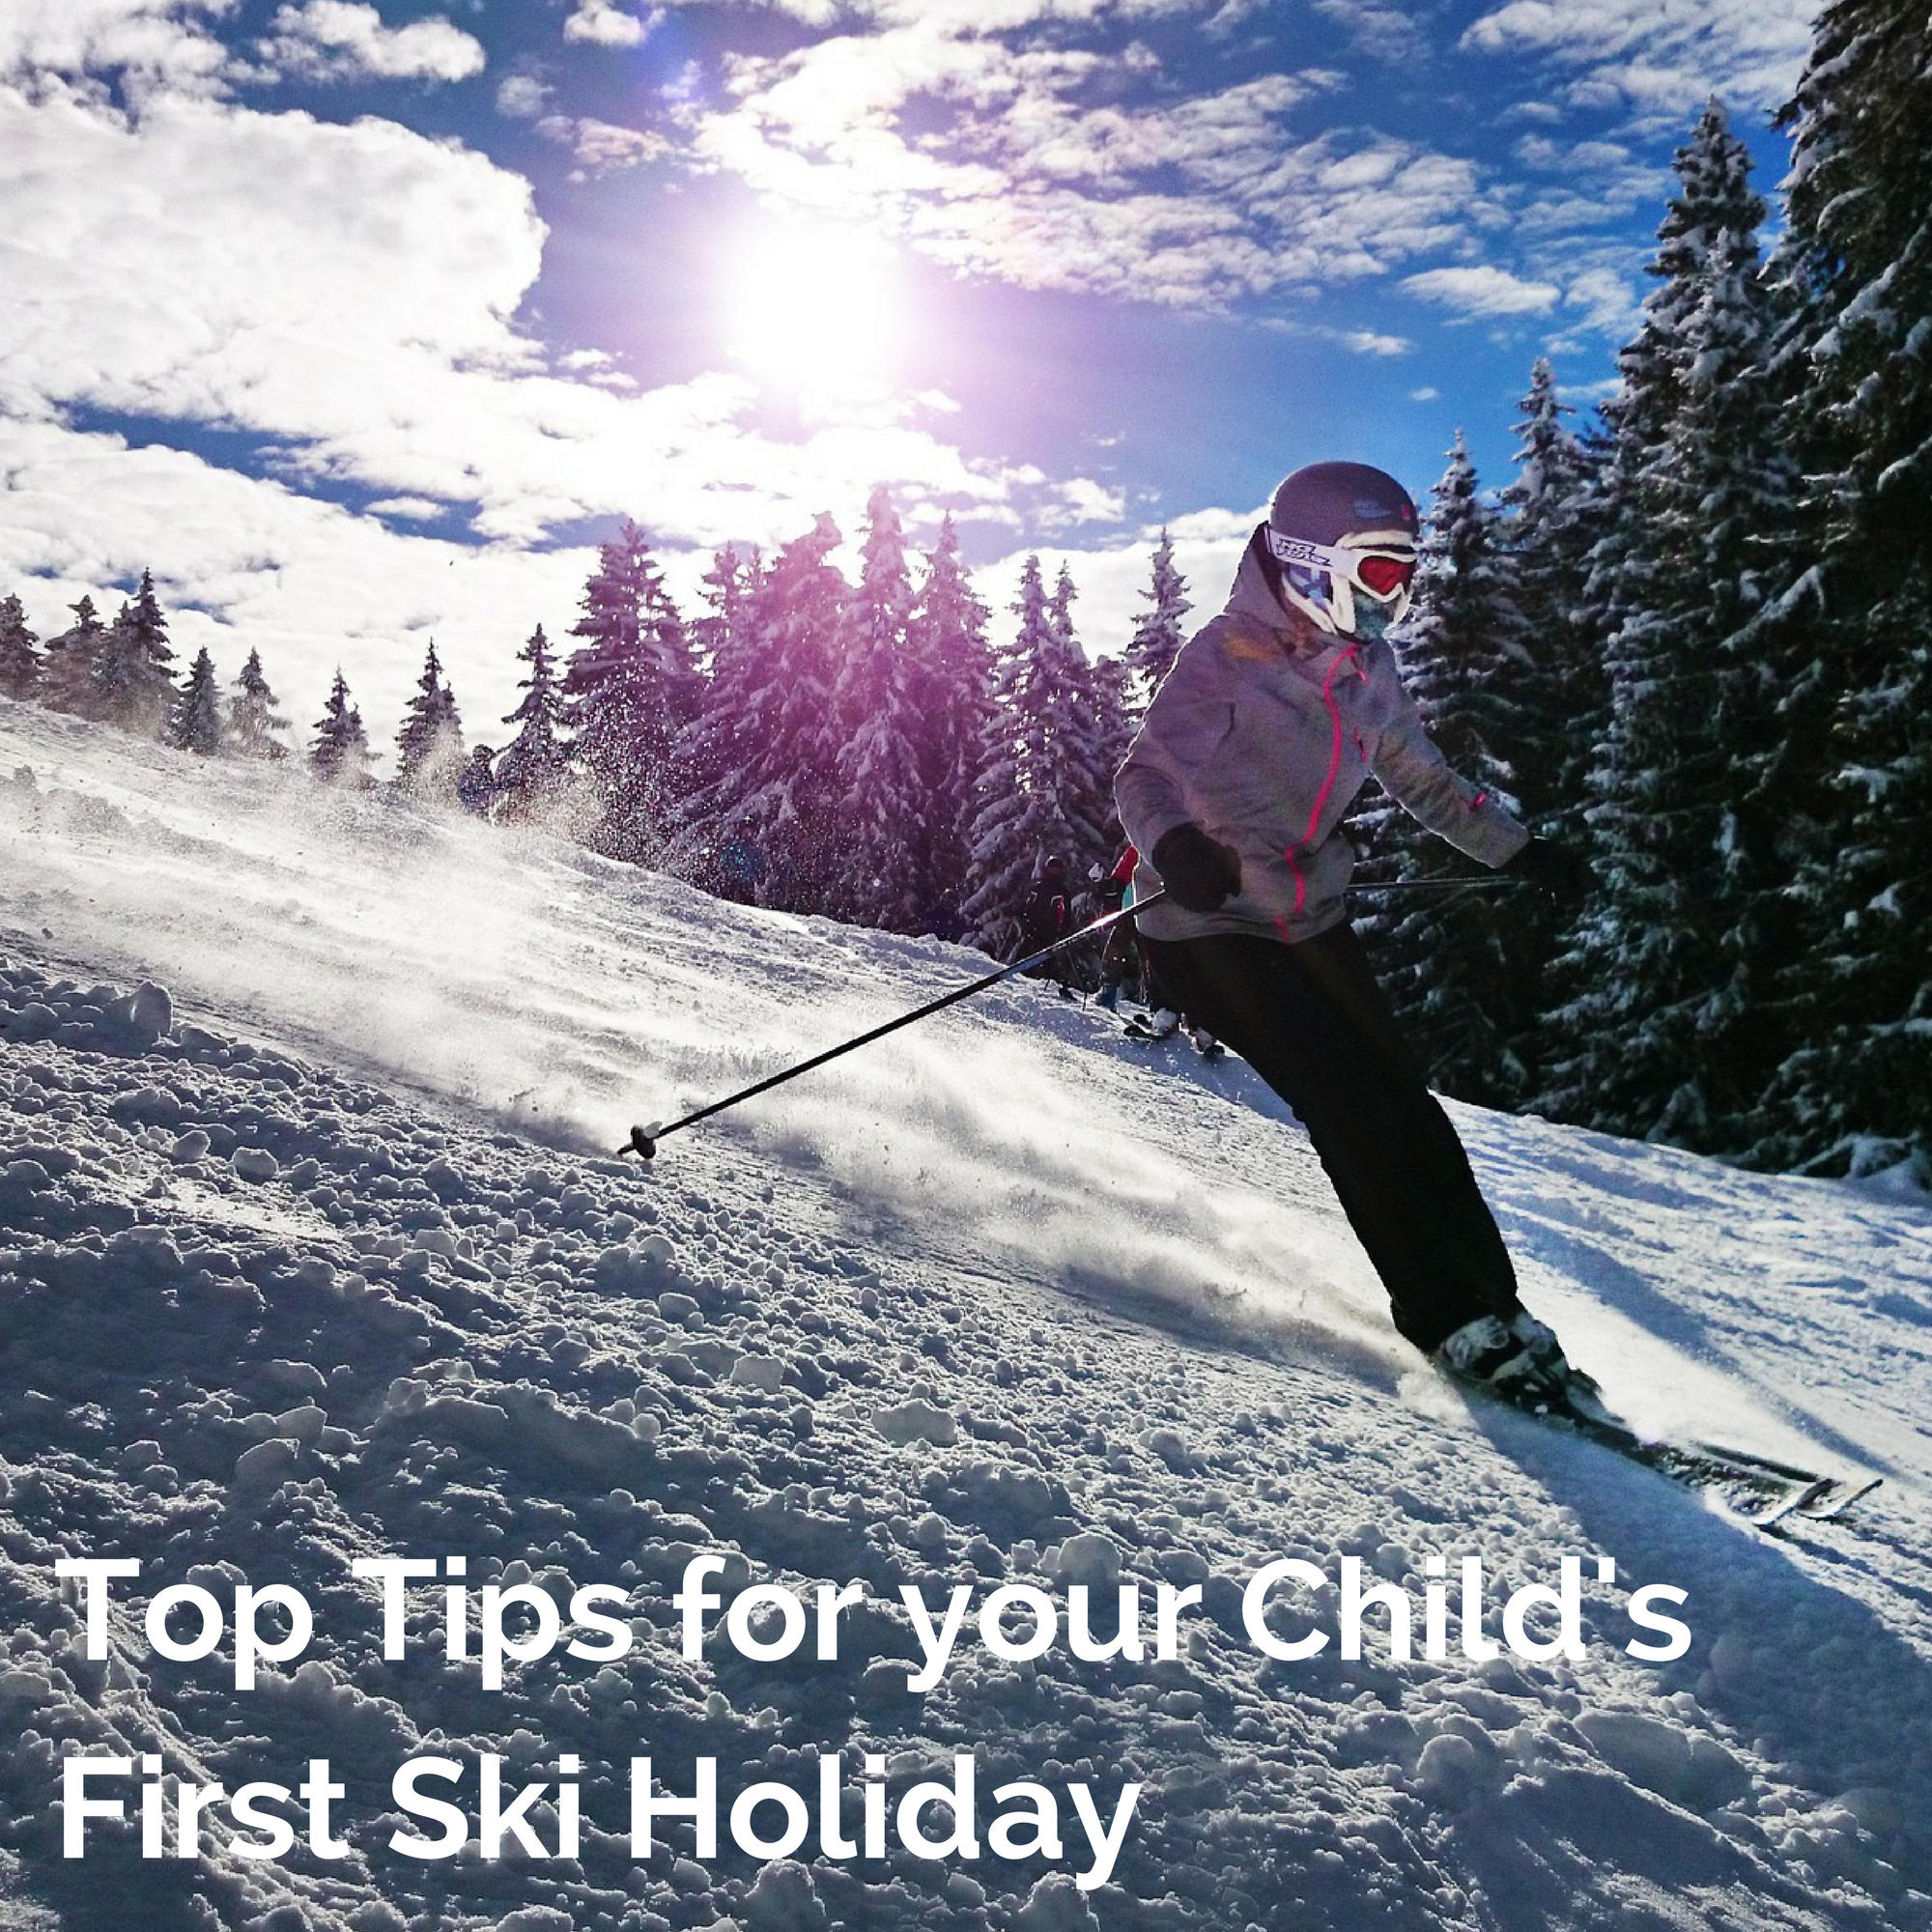 Top Tips for your Child's First Ski Holiday